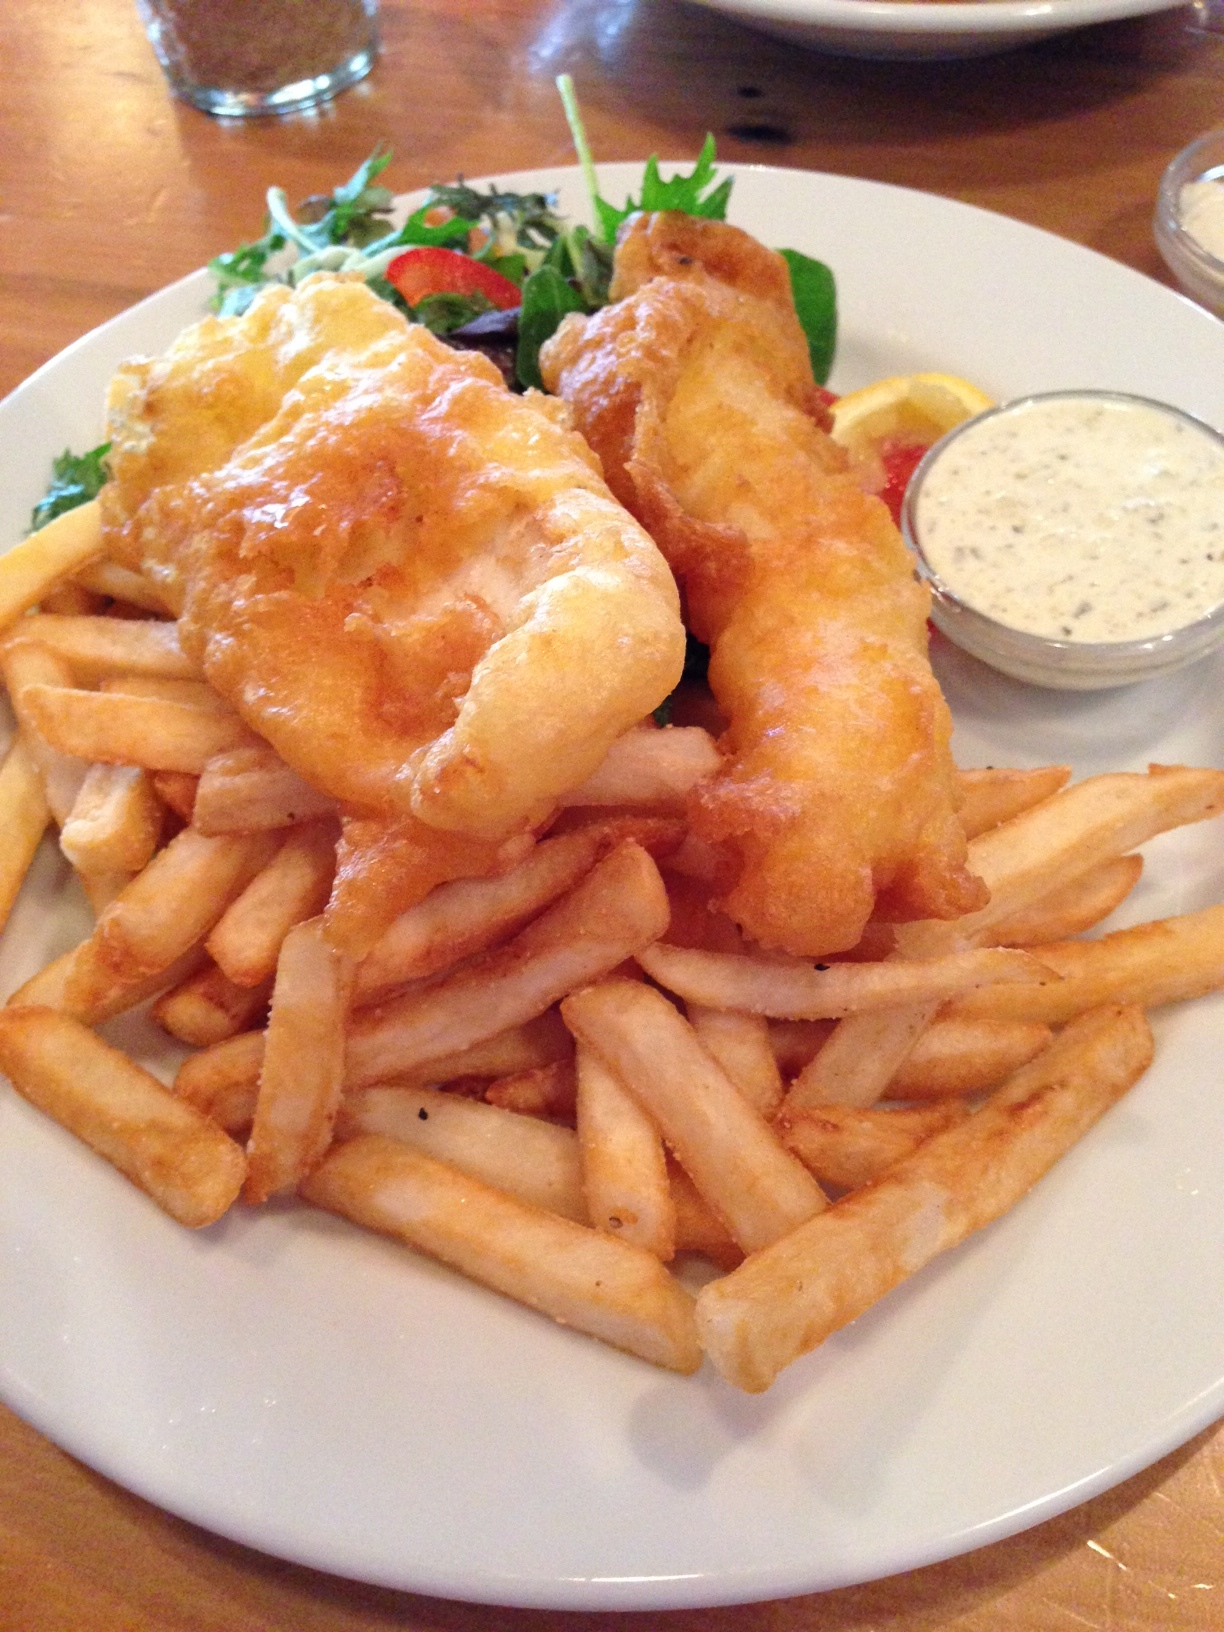 Dunedin Fish and Chips